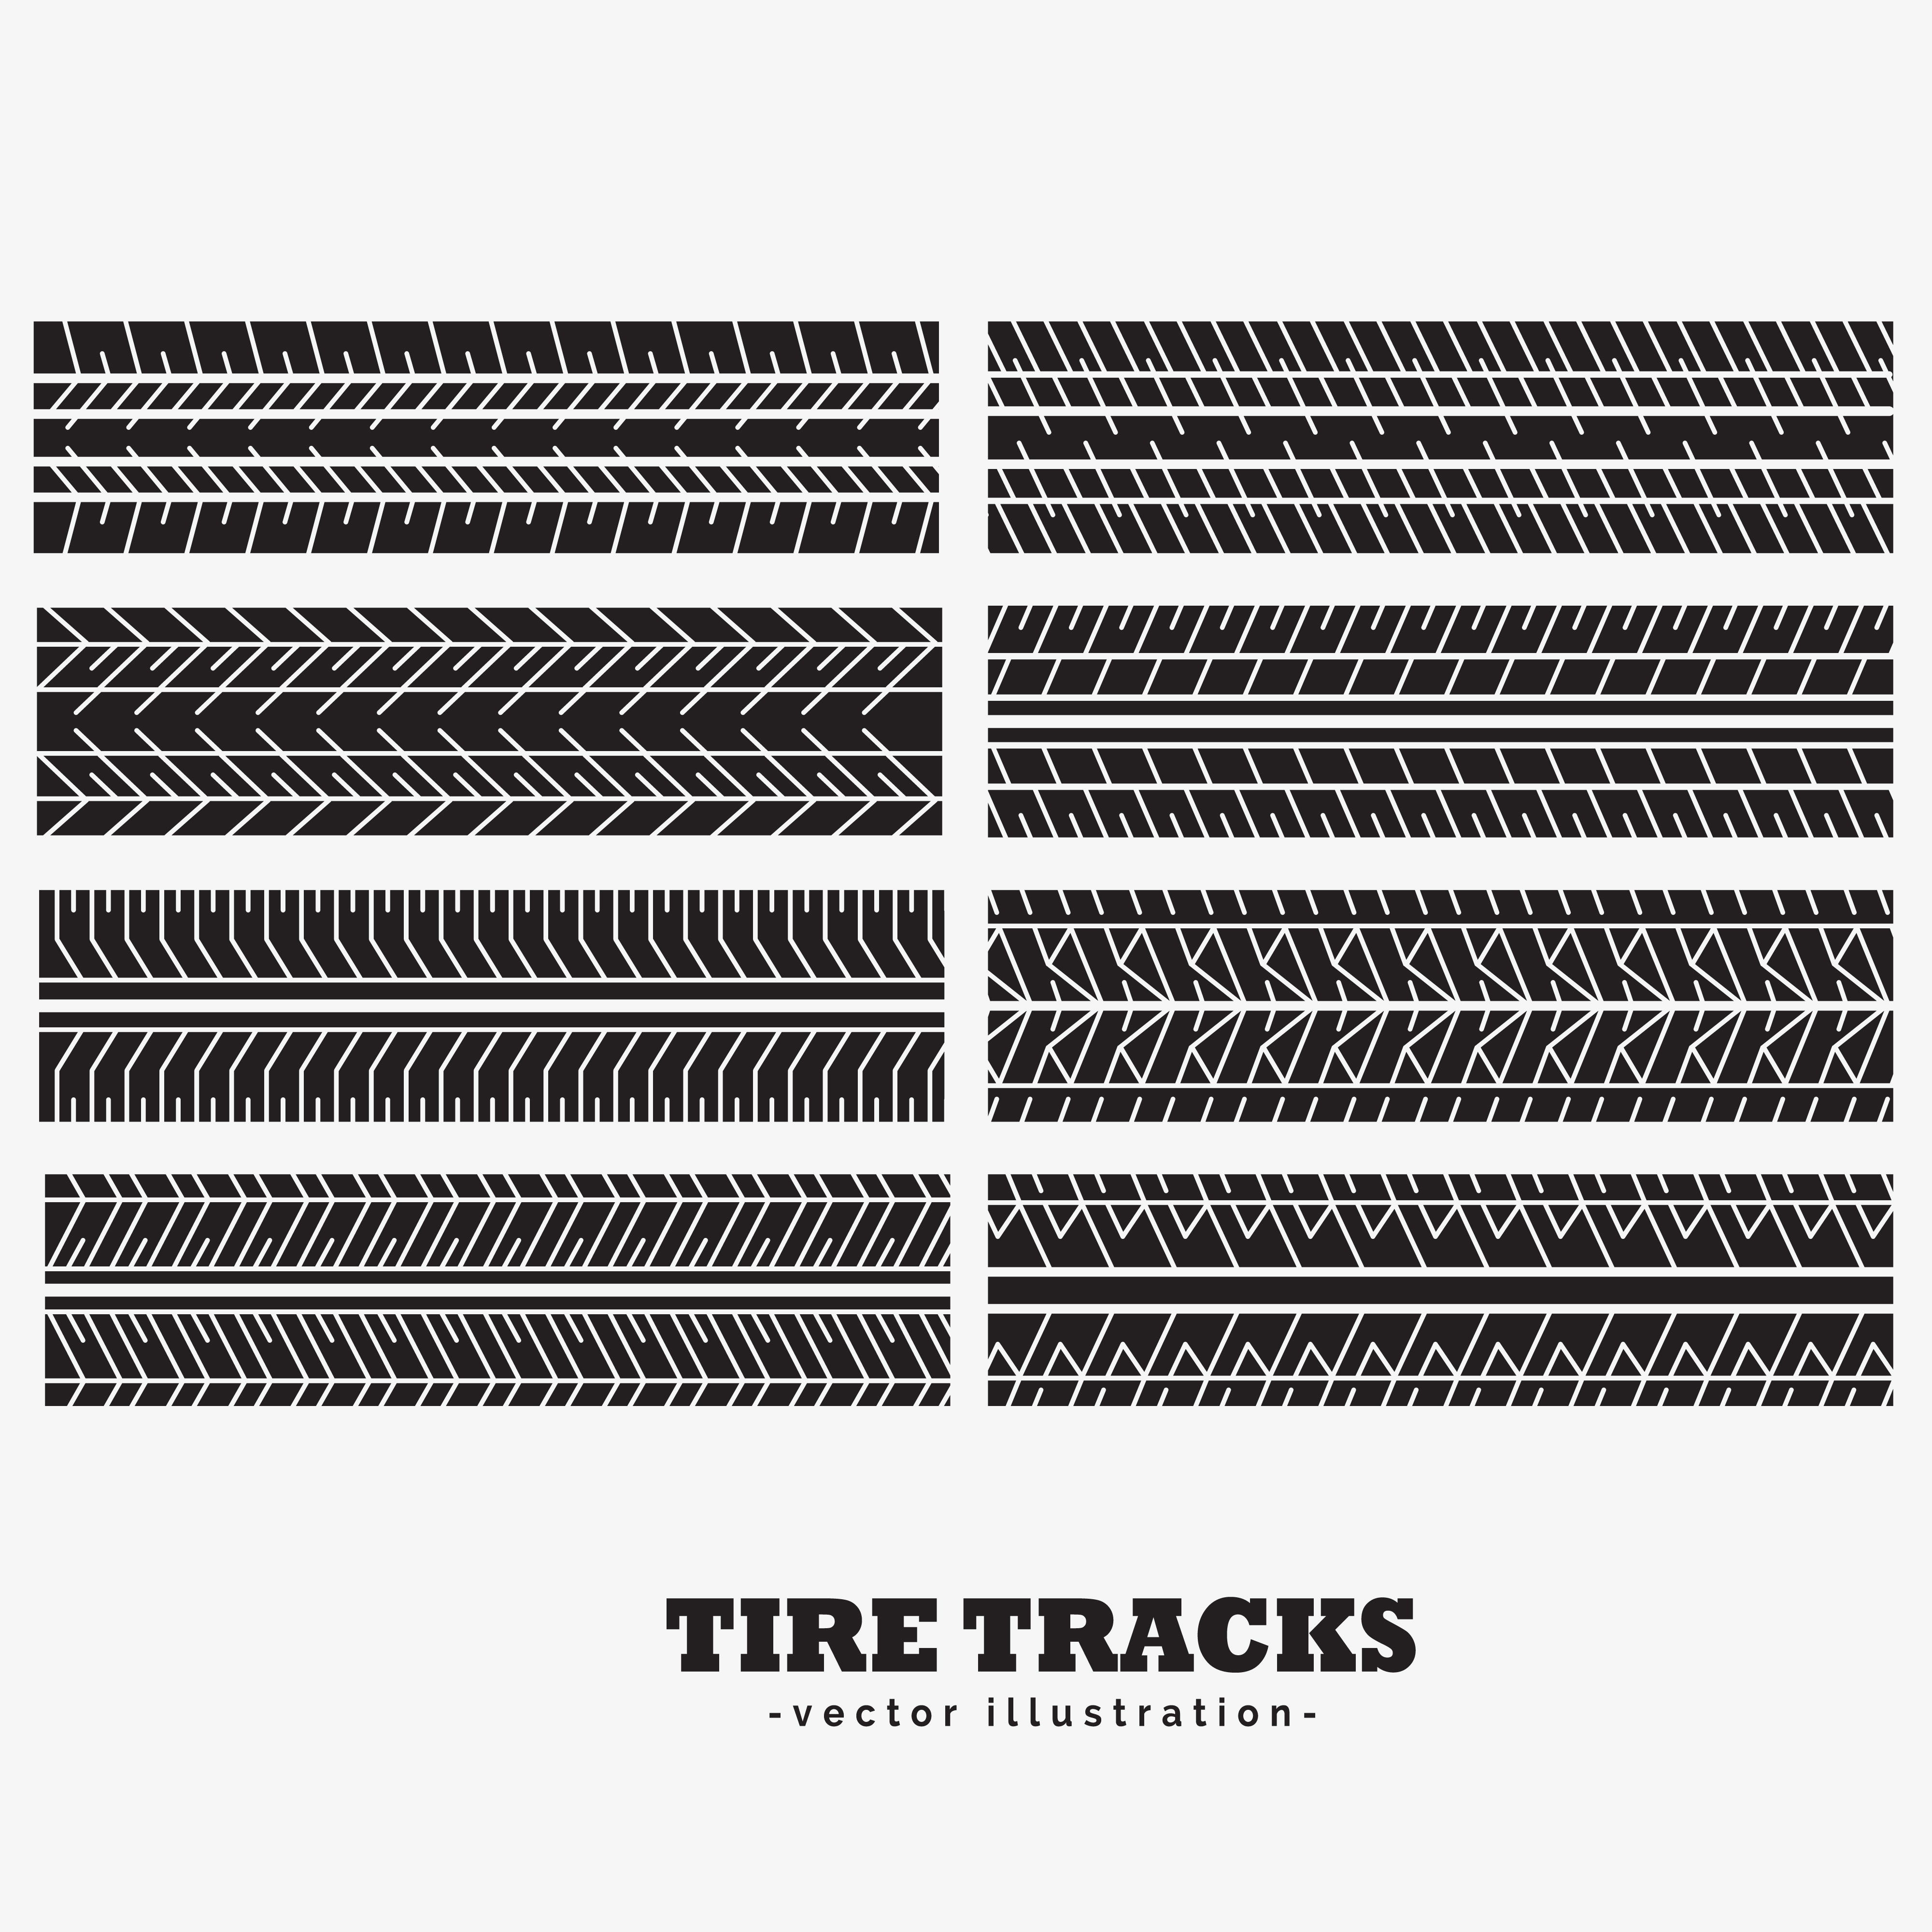 Tyre Tracks Vector 616 Free Downloads